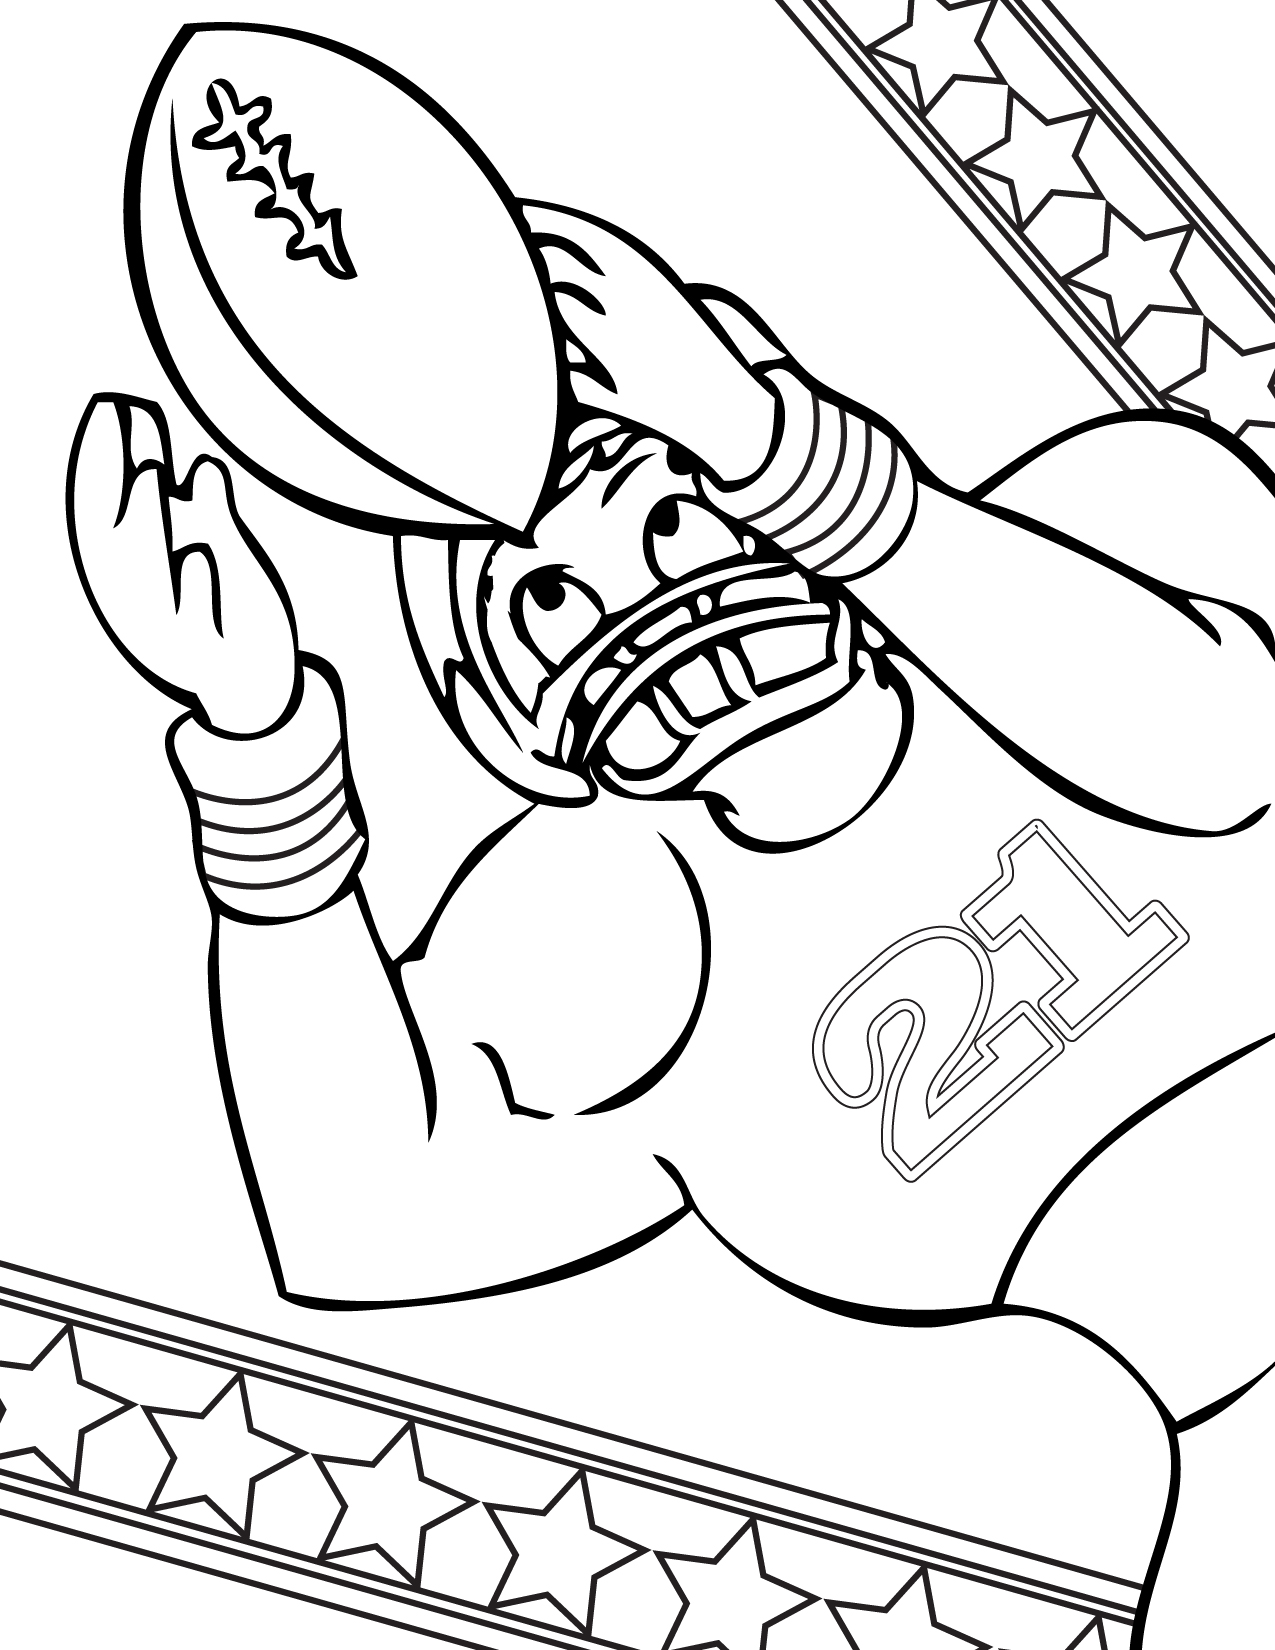 football sports coloring pages - Sports Coloring Book